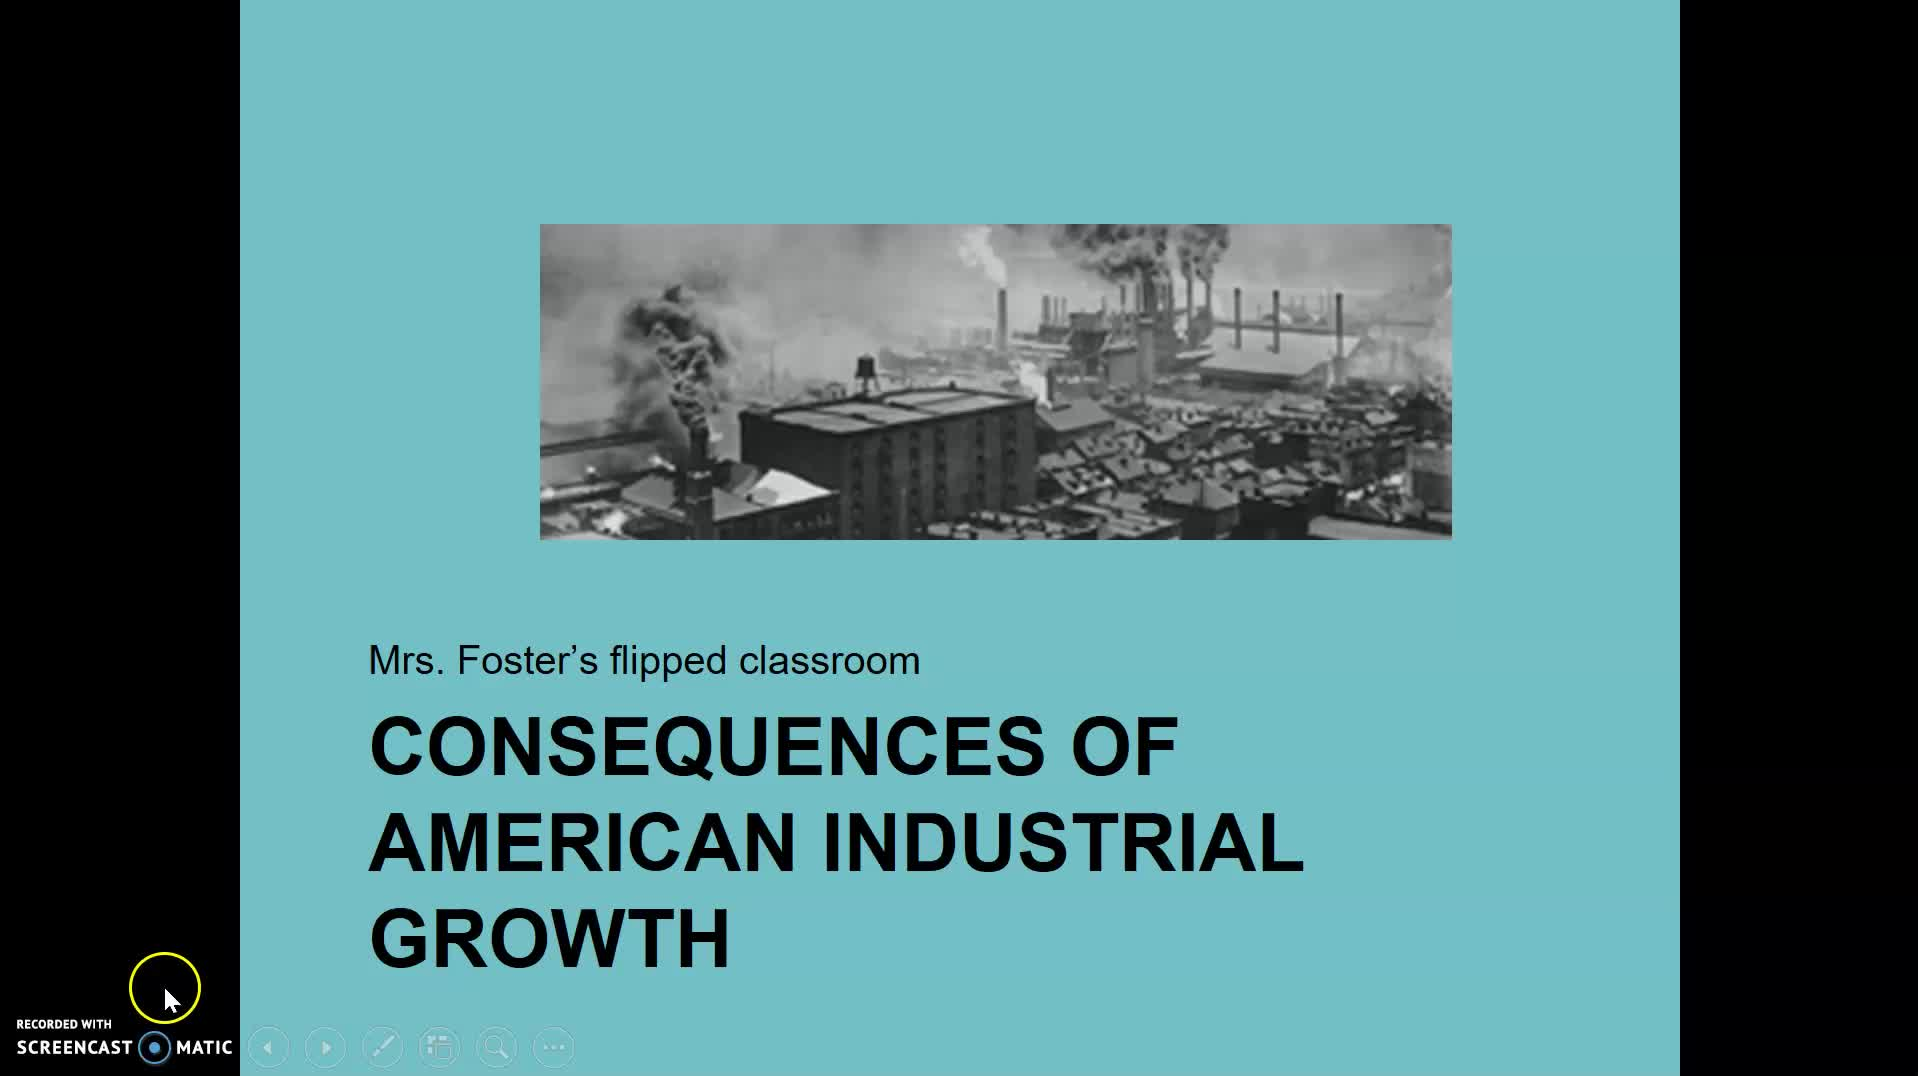 Consequences of American Industrial Growth flipped classroom